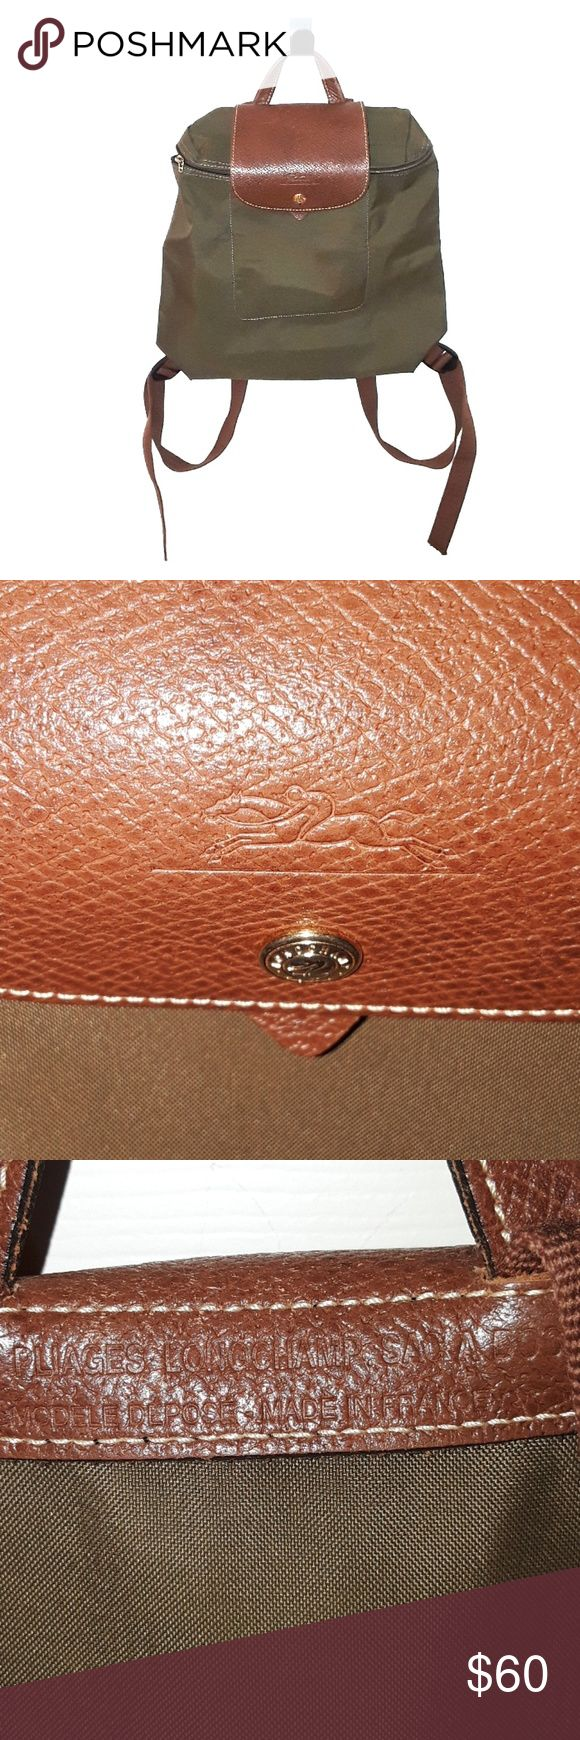 Authentic Les Pliages Longchamp Sac A Dos Backpack Older style authentic Les Pliages Longchamp Sac A Dos Modele Depose Backpack made in France. Used condition with spots on the outside and inside is also  used condition  as well. Picture four shows that the actual Longchamp small piece is missing on  the backpack but you are still able to zip it up . Very nice quality as this is the vintage style backpack made in France, beautiful  color, lightweight used condition,wear on Corners…